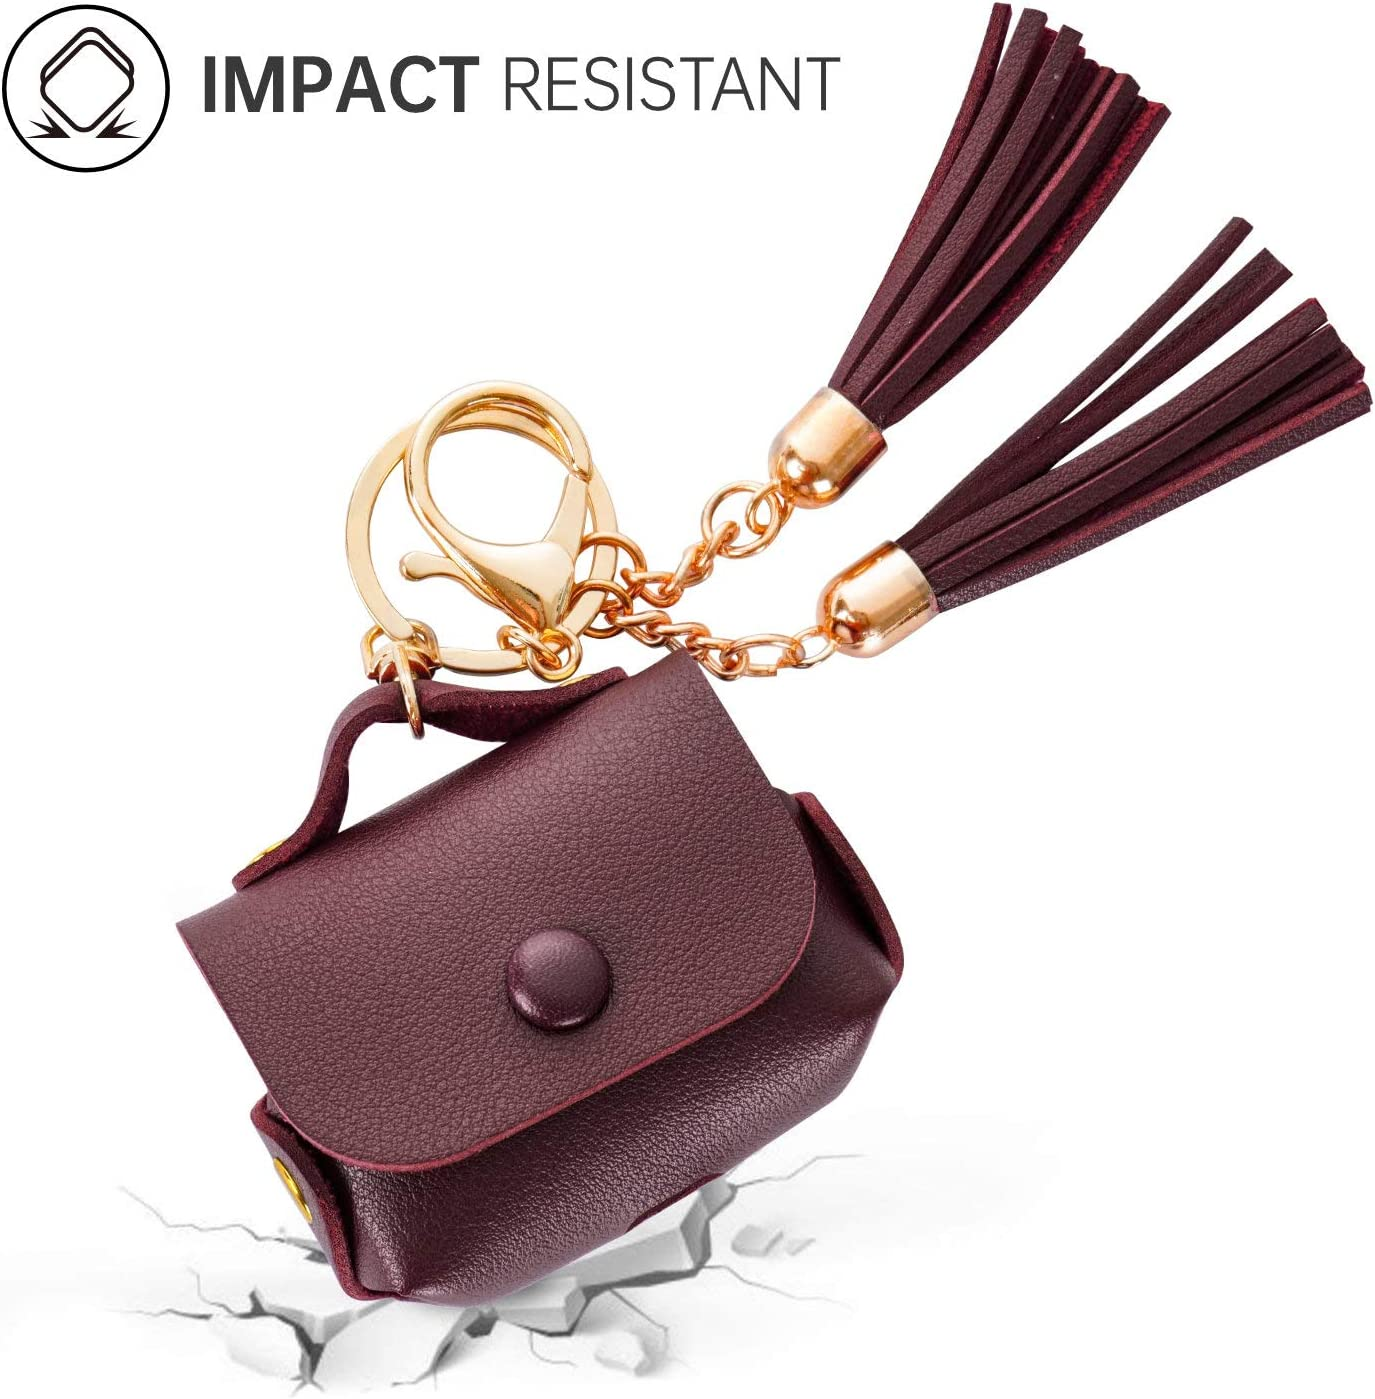 ODUMDUM Cute AirPods Pro Protective Case Cover for Apple Airpods Pro Case Best Gift for Girls and Women Airpod Accessories PU Leather Case Tassel Charm Women Key Ring Maroon